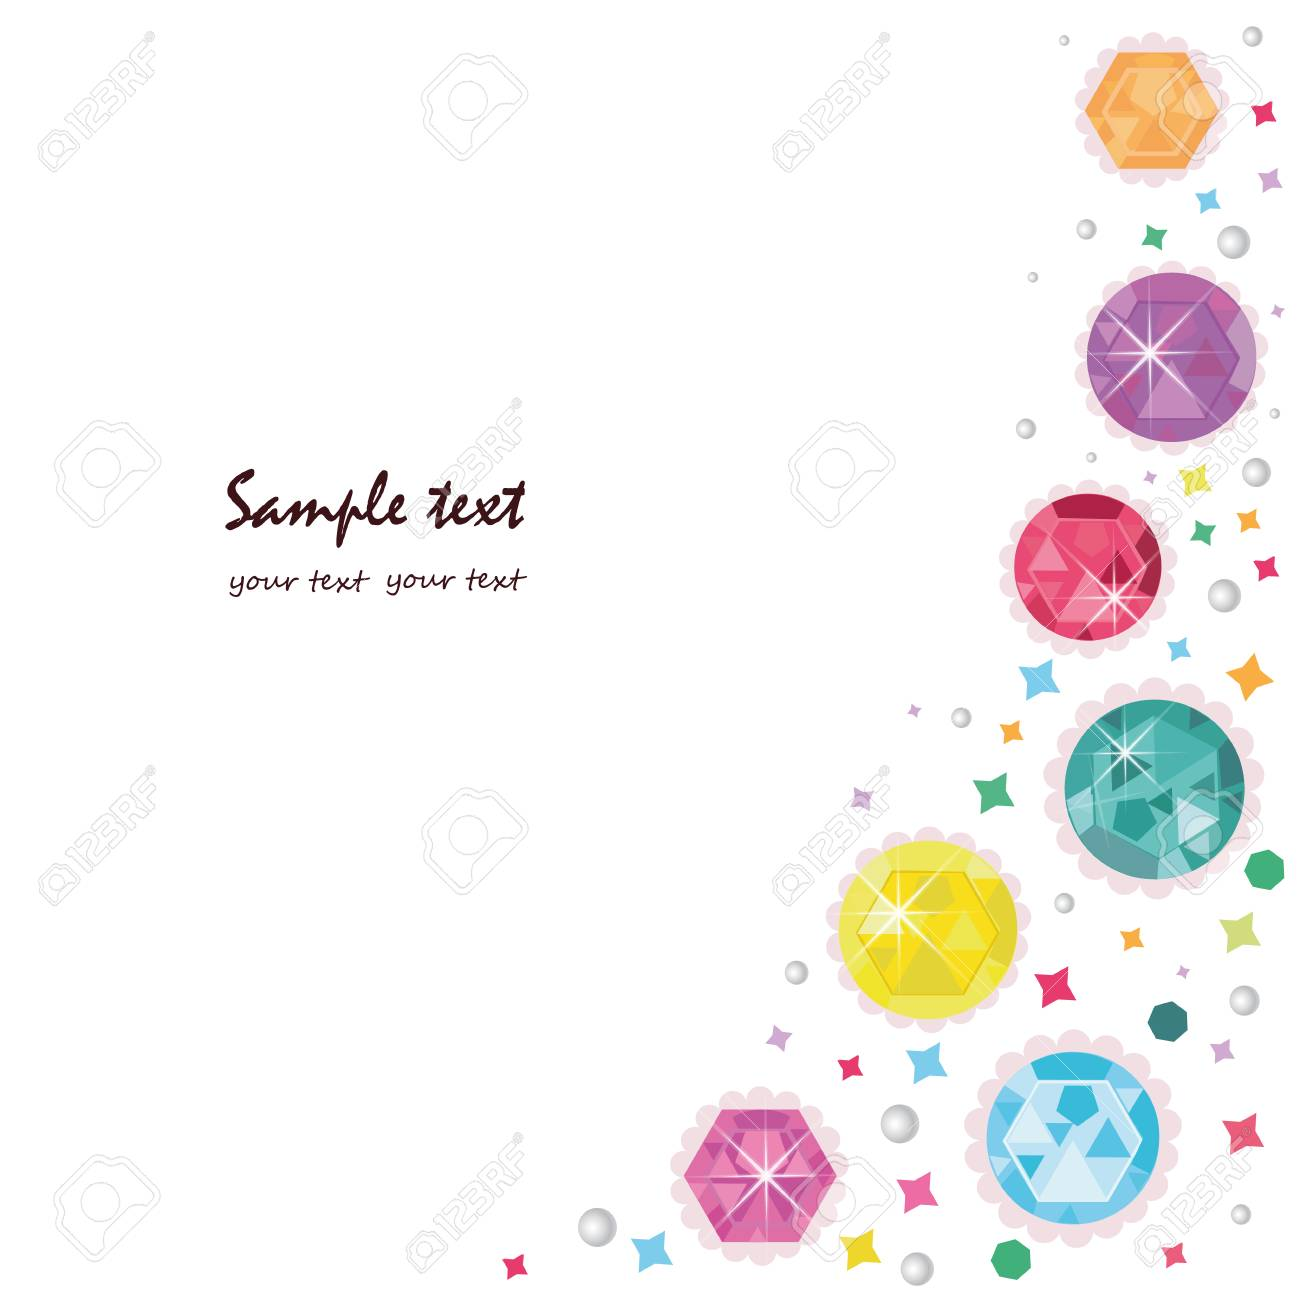 Colorful diamonds greeting card vector background - 40260817